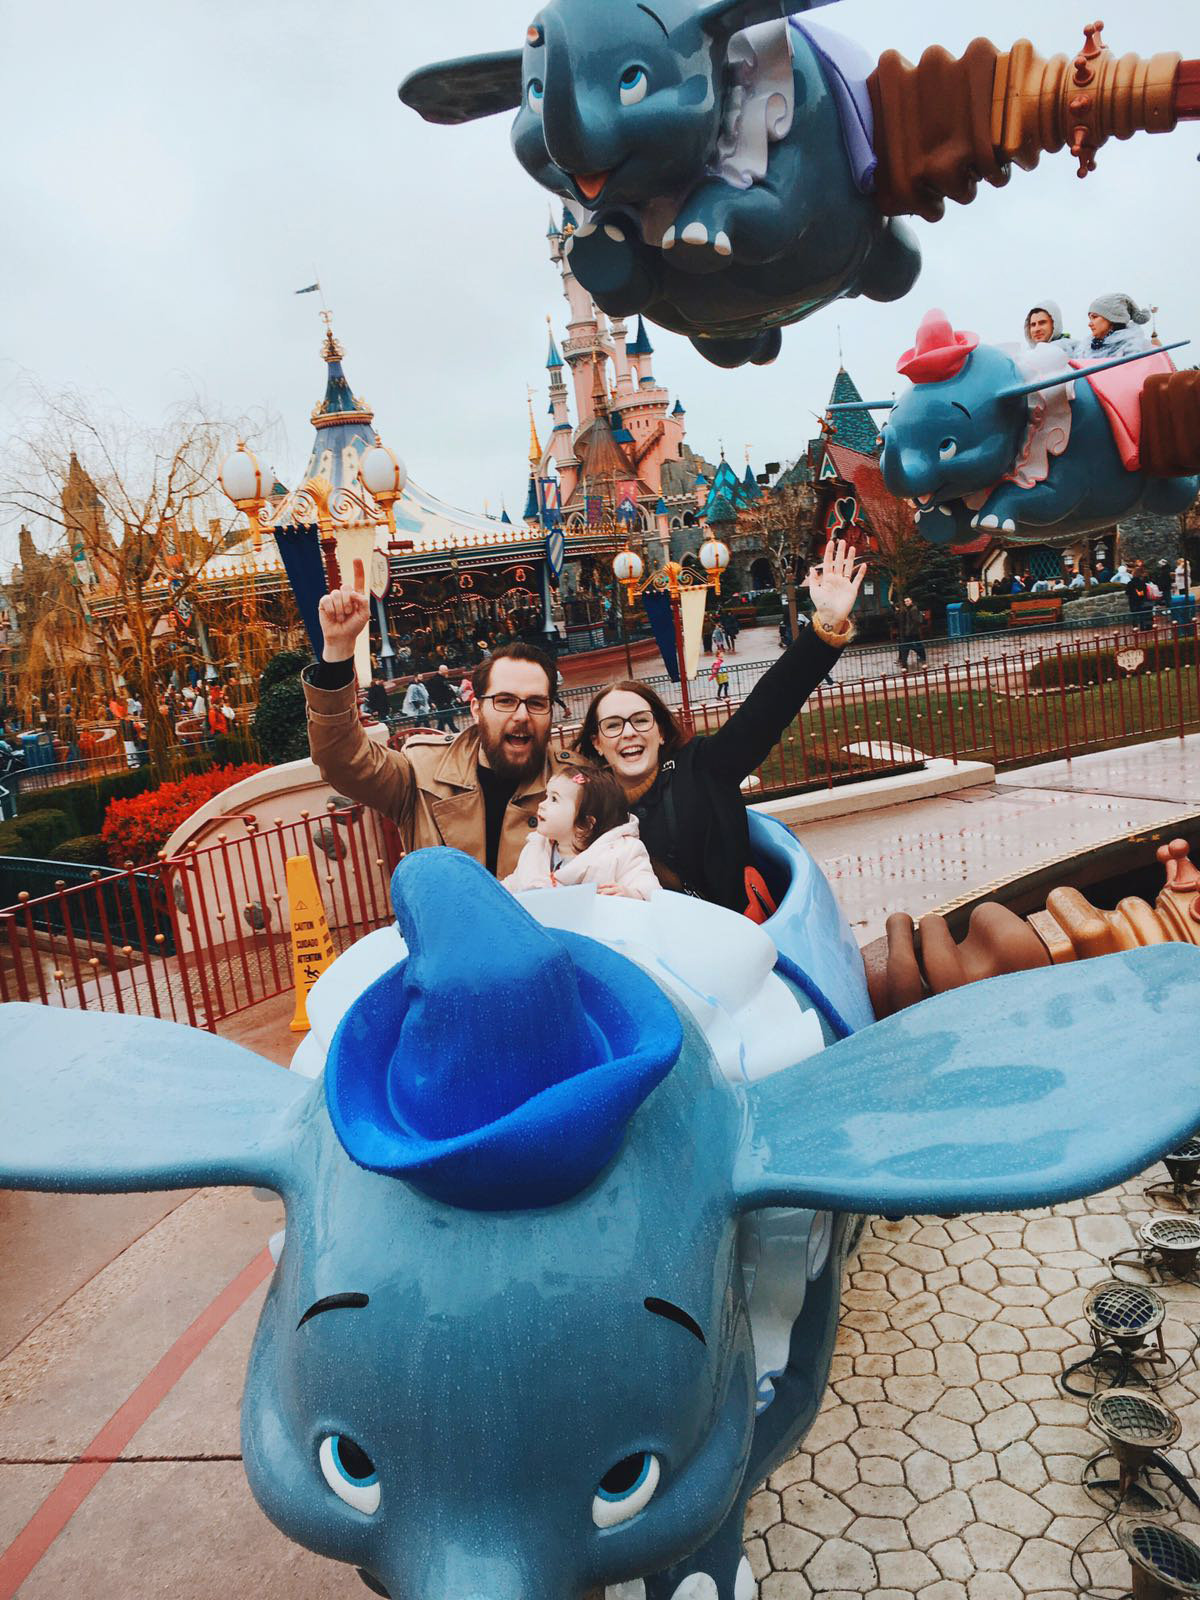 anna frost fafine disney disneyland paris dumbo ride